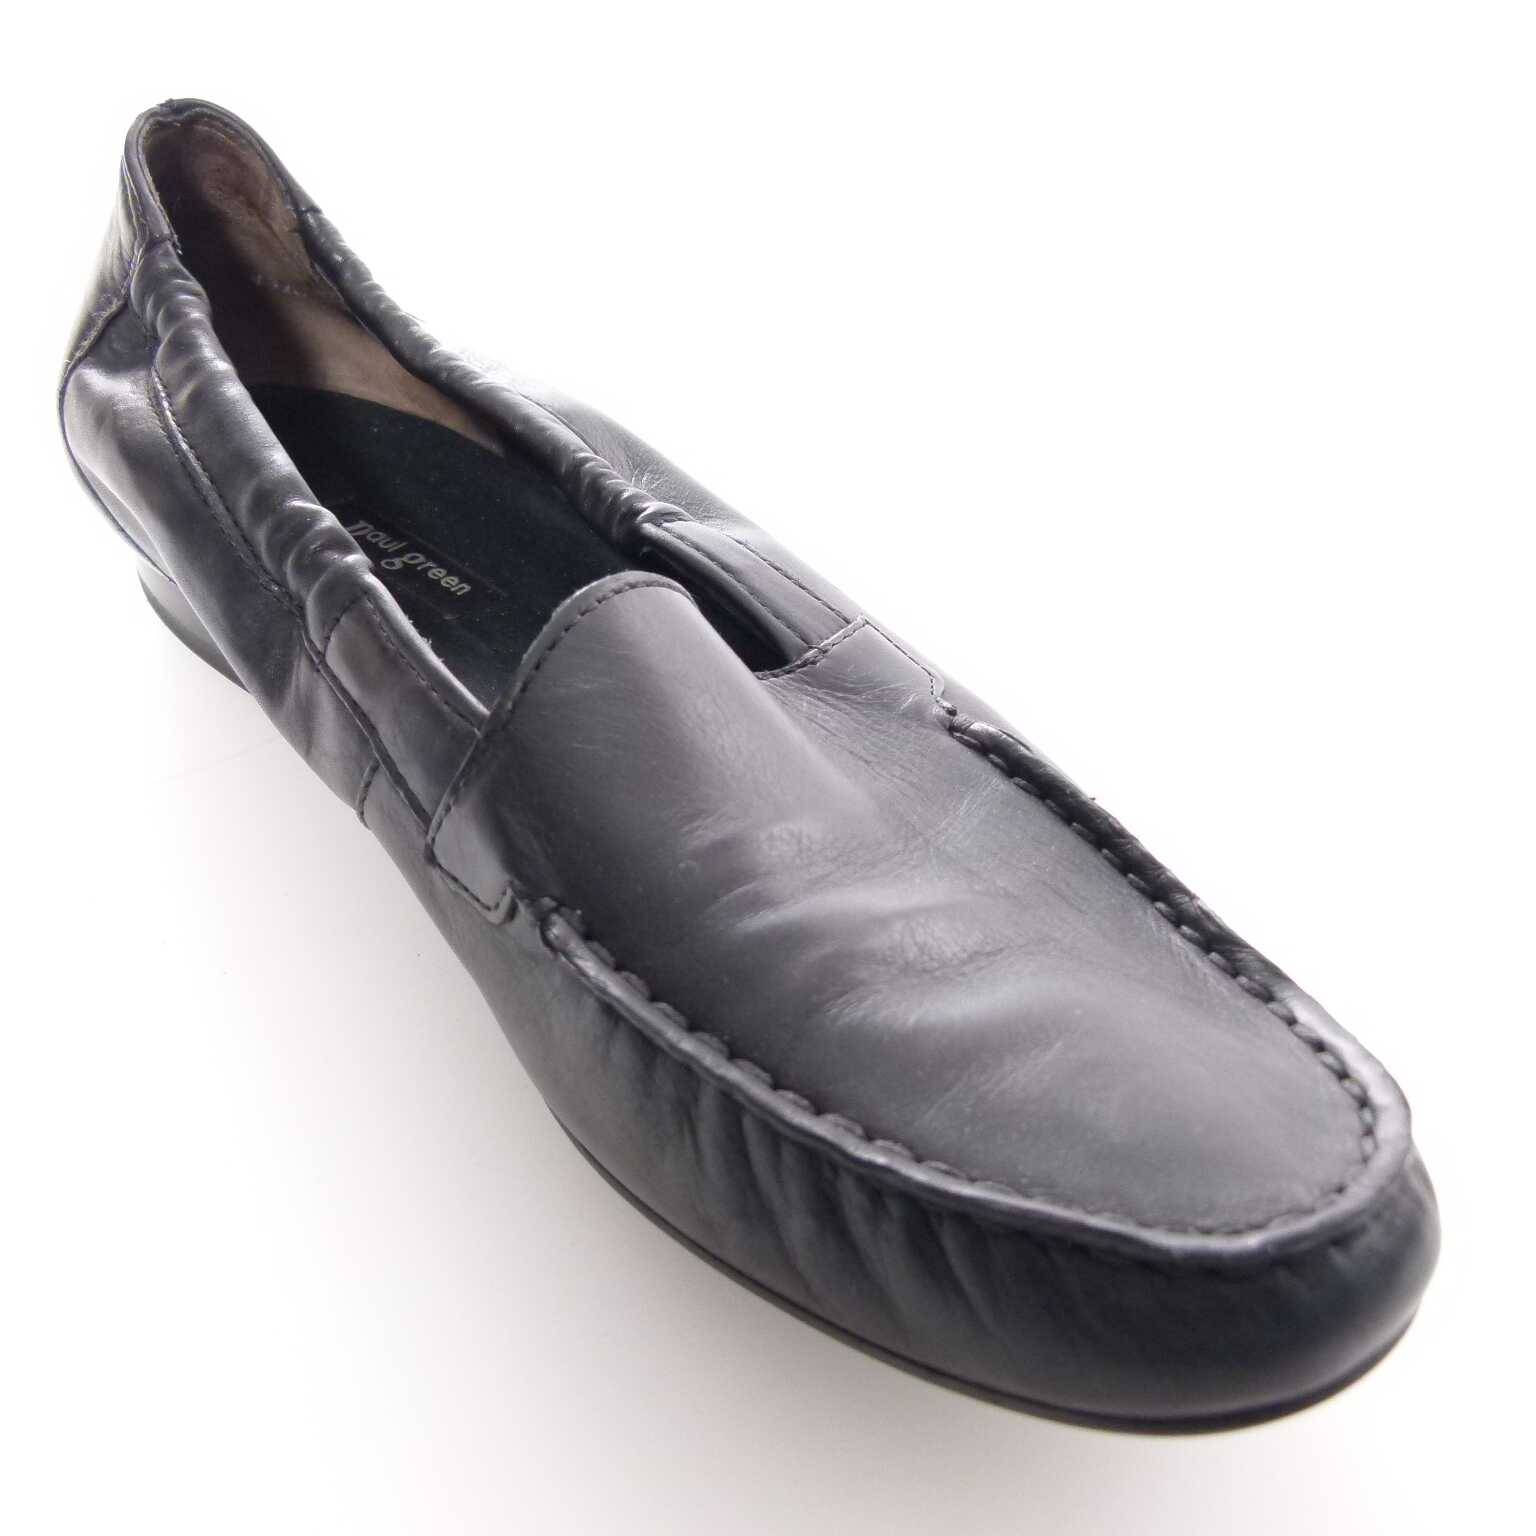 paul green slipper schuhe gr 36 dt 5 us in schwarz ahb women schuhe. Black Bedroom Furniture Sets. Home Design Ideas